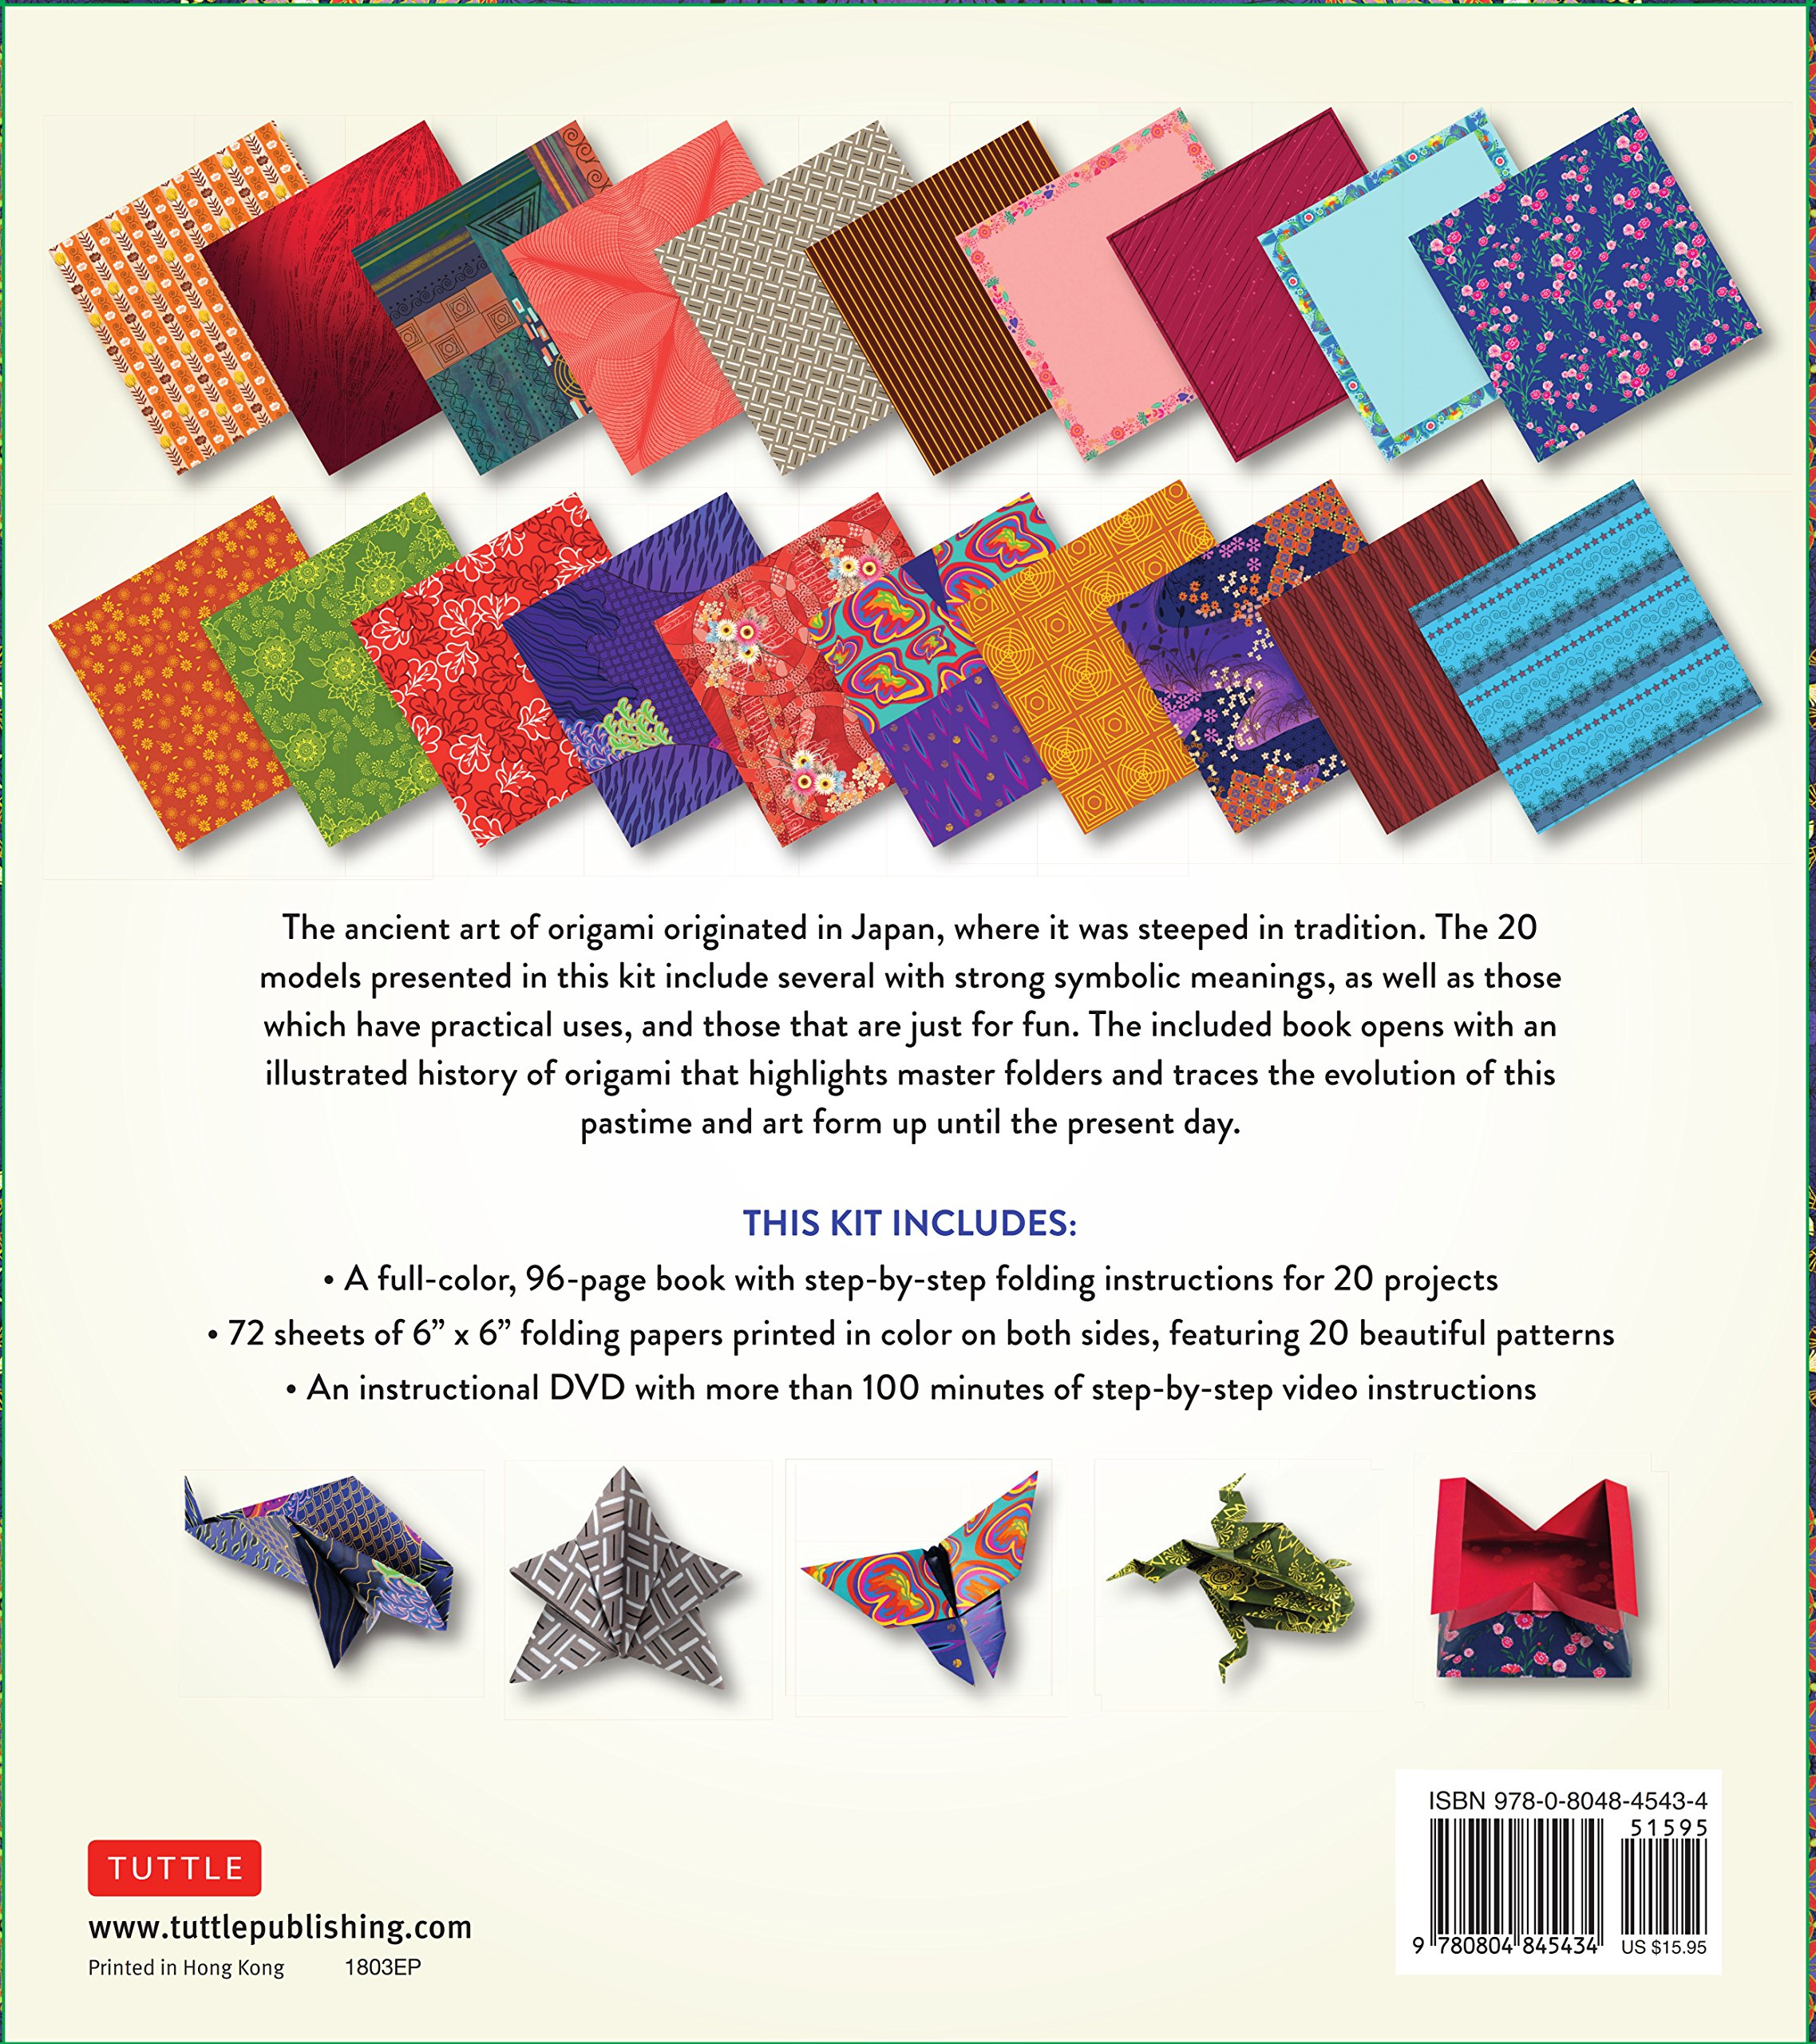 Japanese Origami For Beginners Kit 20 Classic 3d Small Swan Assembly Diagram Beginner Tutorial Models With 96 Page Book 72 High Quality Papers And Instructional